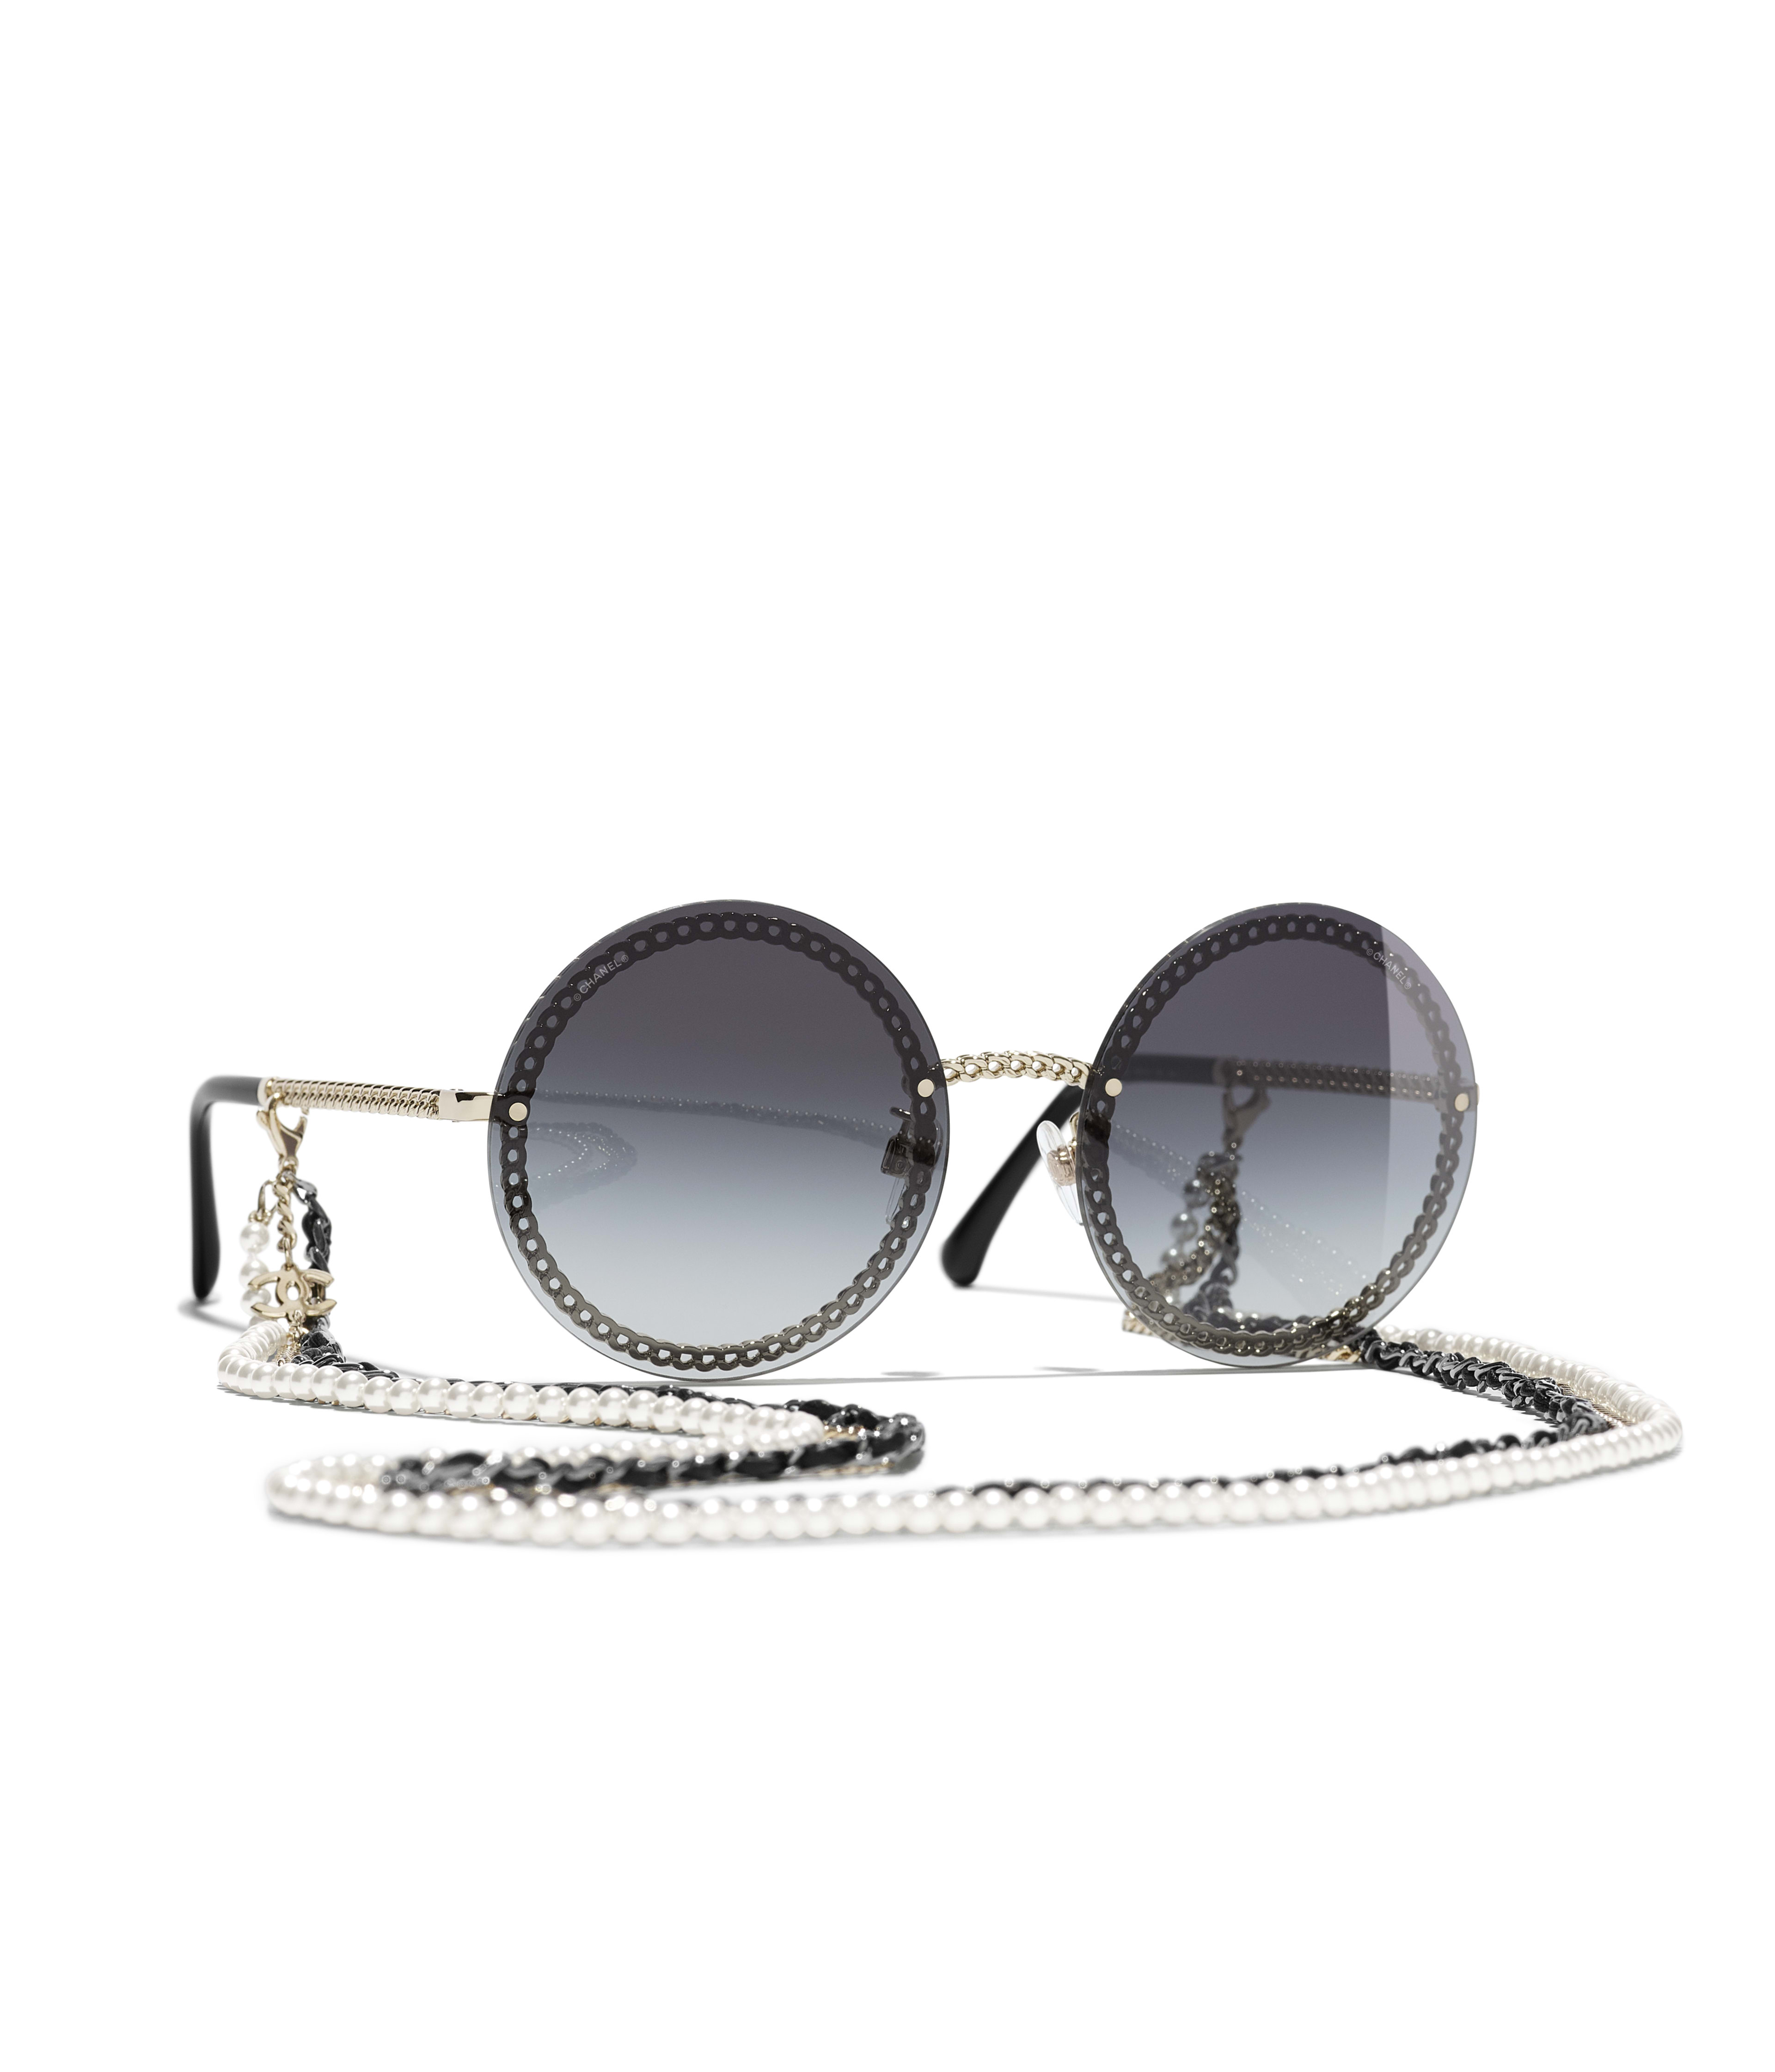 Round Sunglasses Ref. 4245 C125 S6 afd05a59bbba